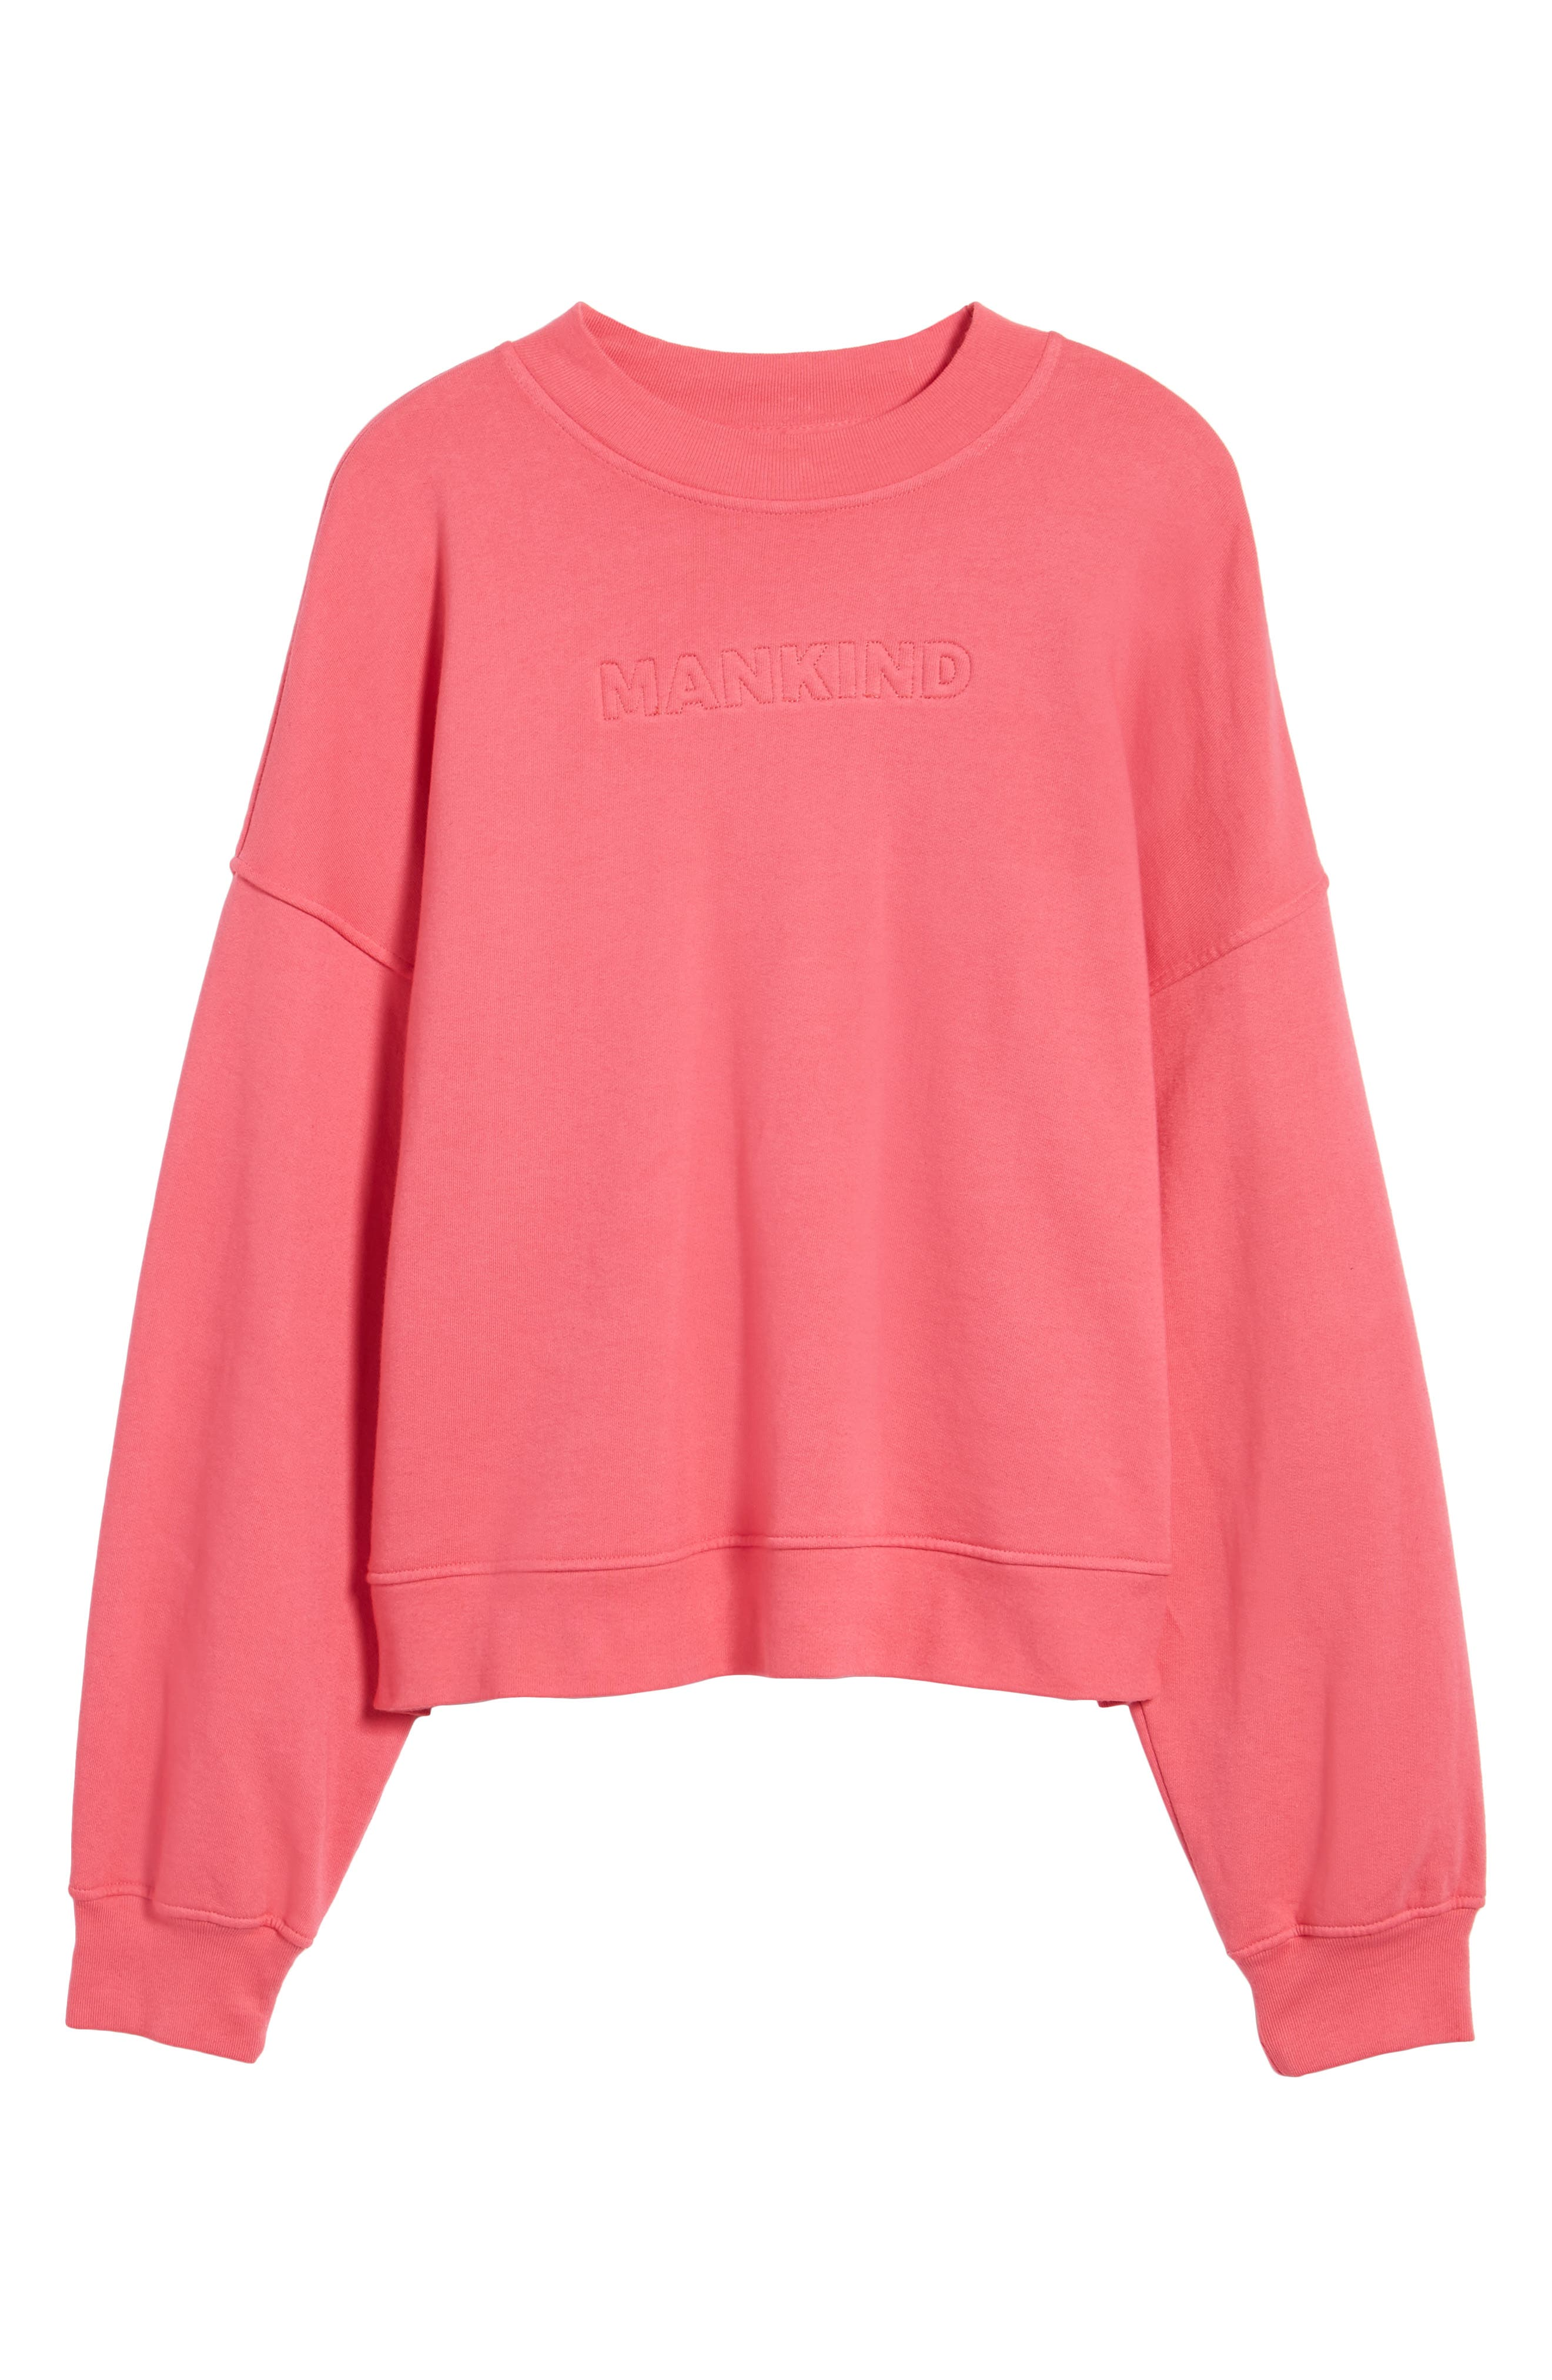 Mankind Outline Embroidered Sweatshirt,                             Alternate thumbnail 6, color,                             Honeysuckle